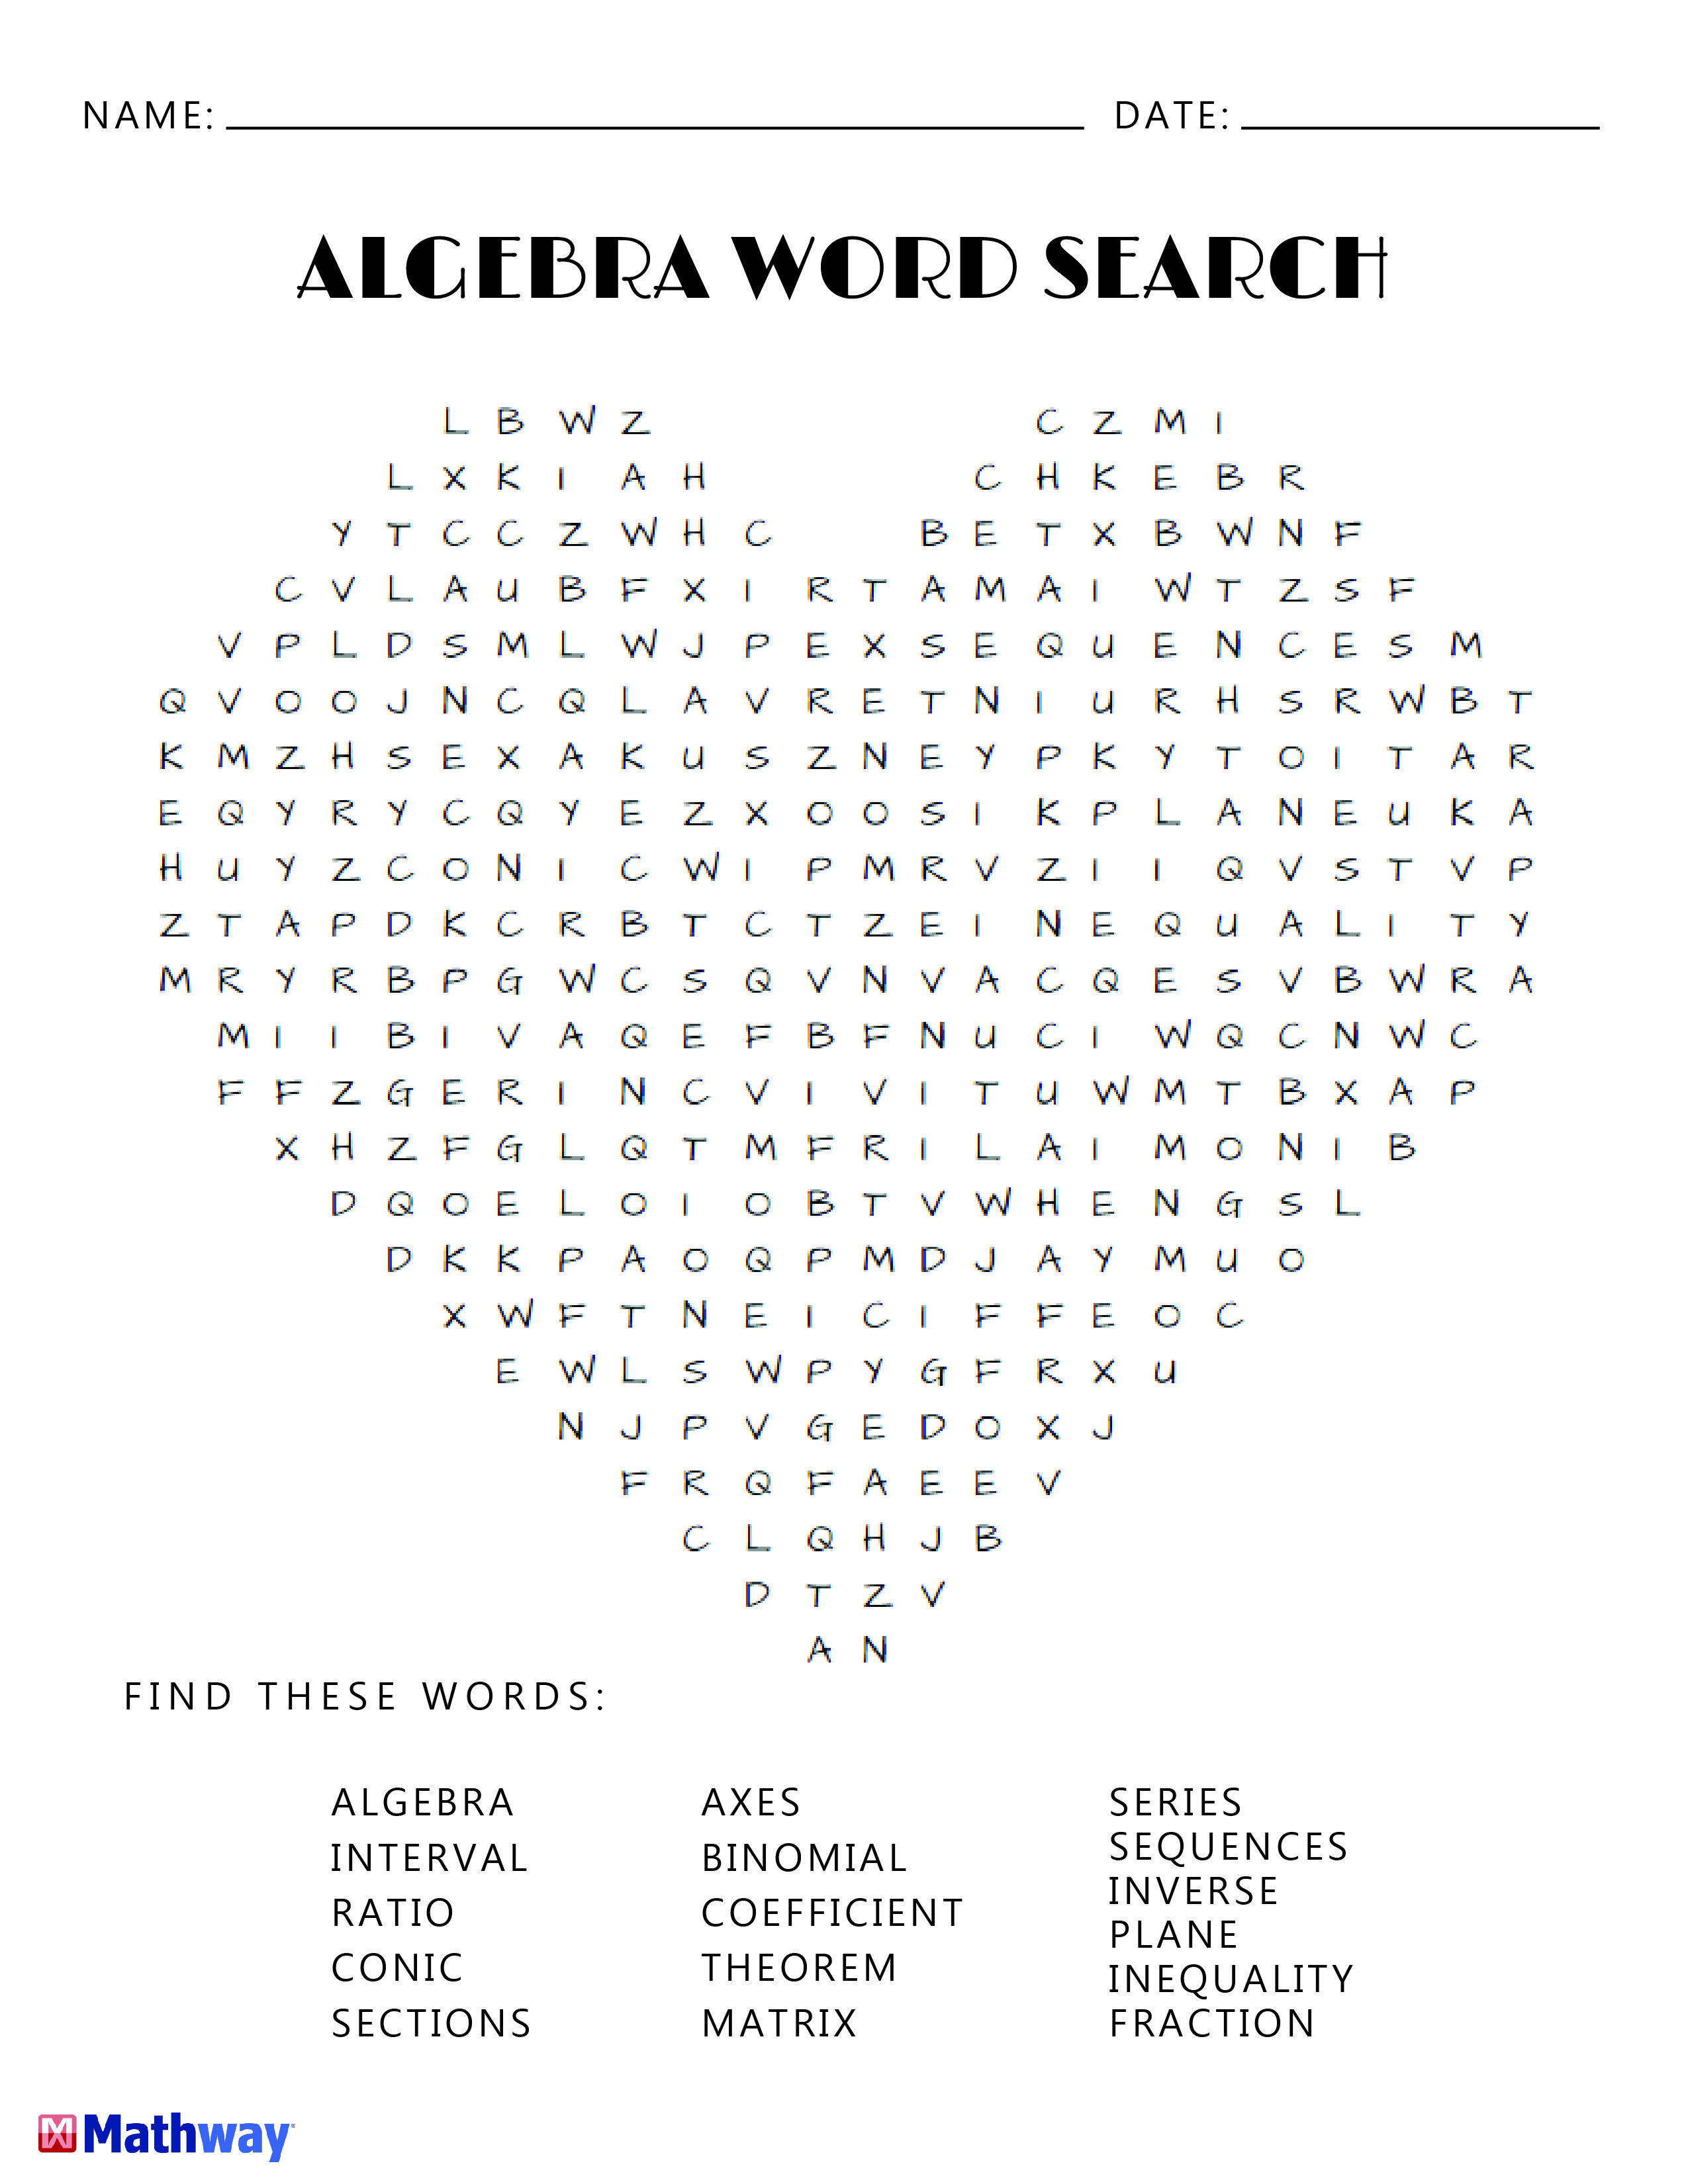 Print Our Valentine S Day Themed Word Search For Your